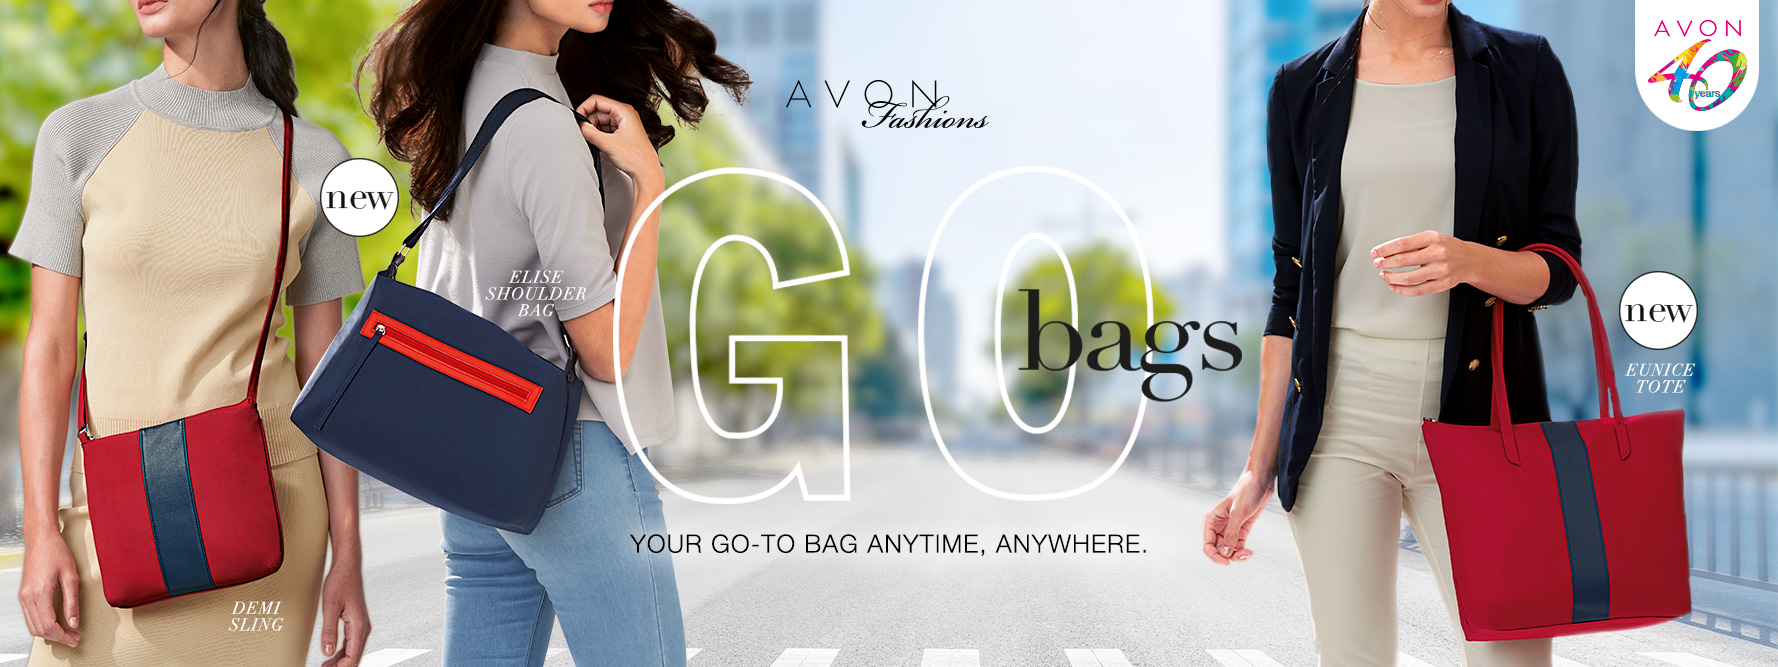 Check out our Go Bags Promo!